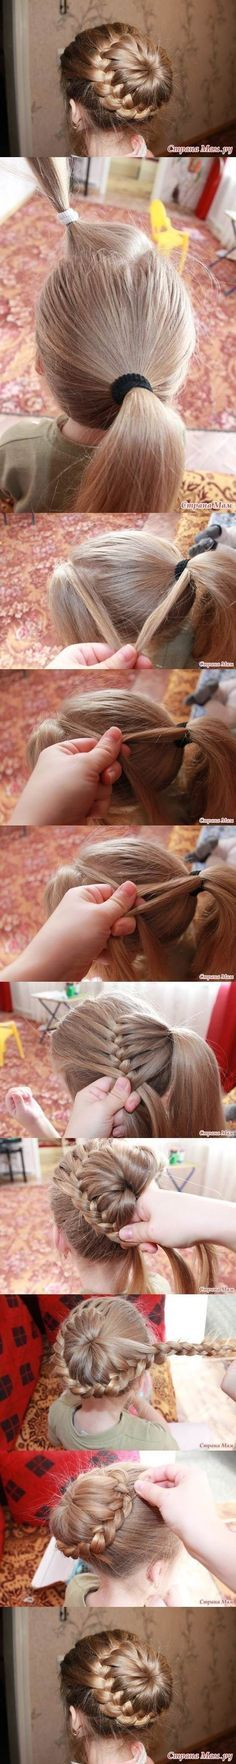 Plait hairstyle is one of the popular hairstyle for all the time. Time to time it remained the one of the favorite choices of the all stylist women of decades. You can try both sleek fishtail braid and intricate plaited braid. For latest and amazing plait